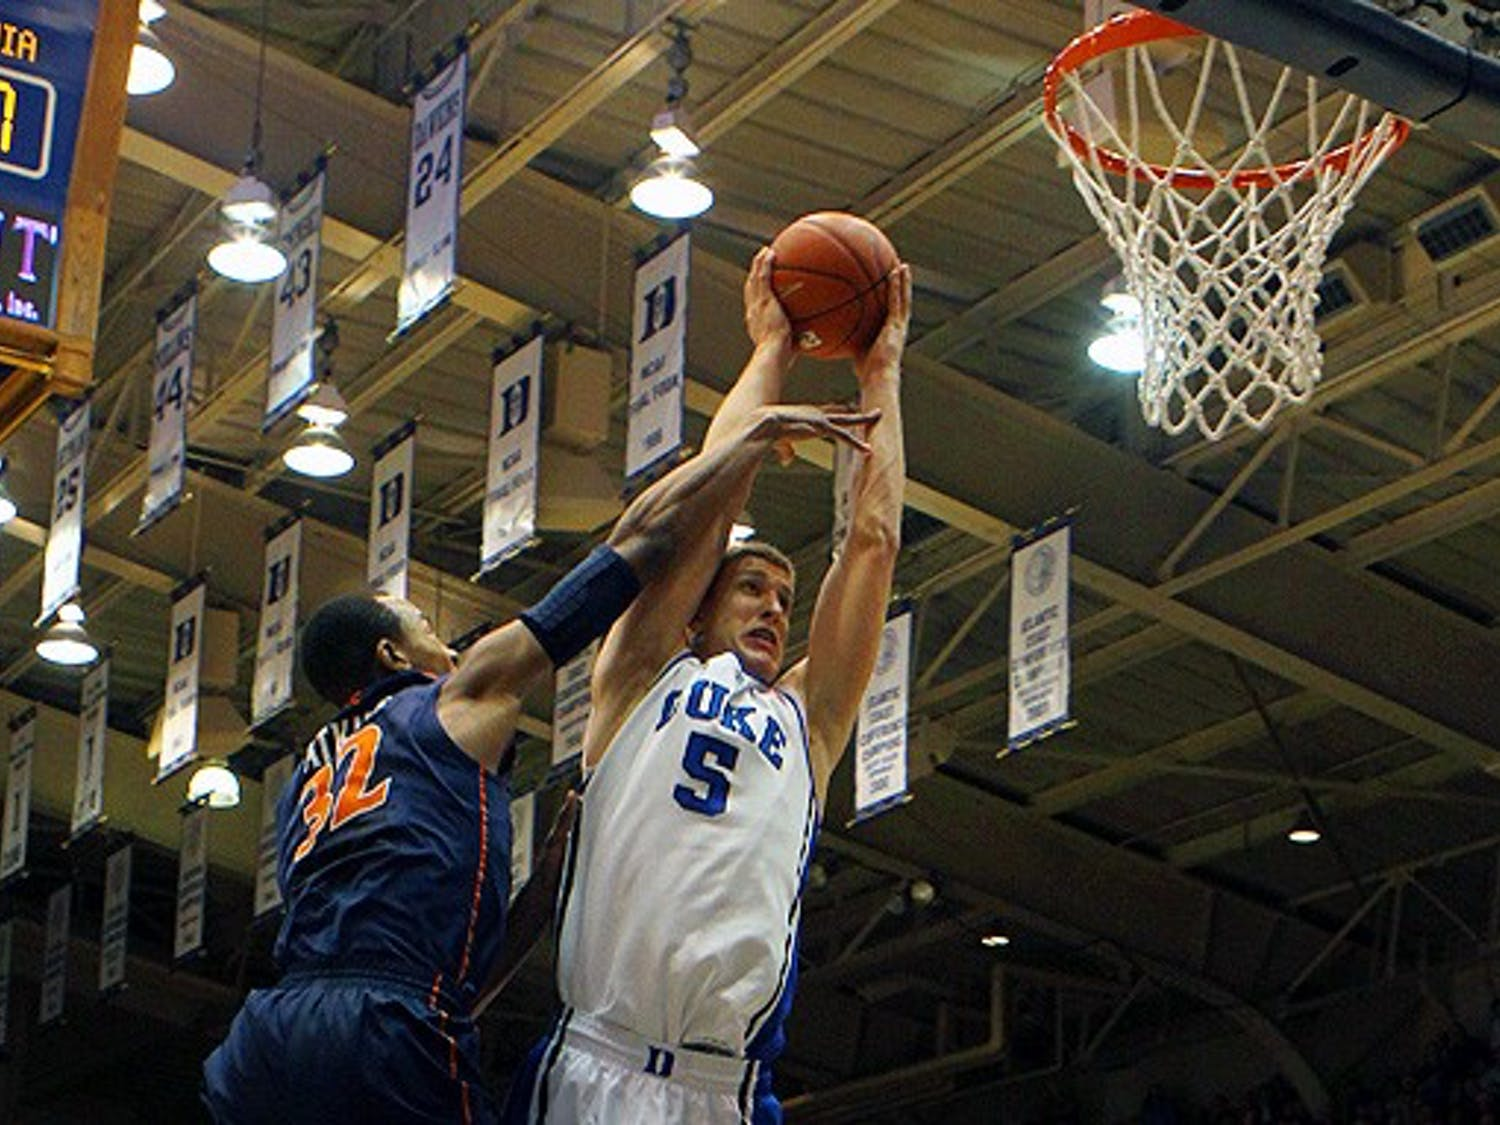 The Blue Devils were victorious Thursday night in Cameron Indoor Stadium.